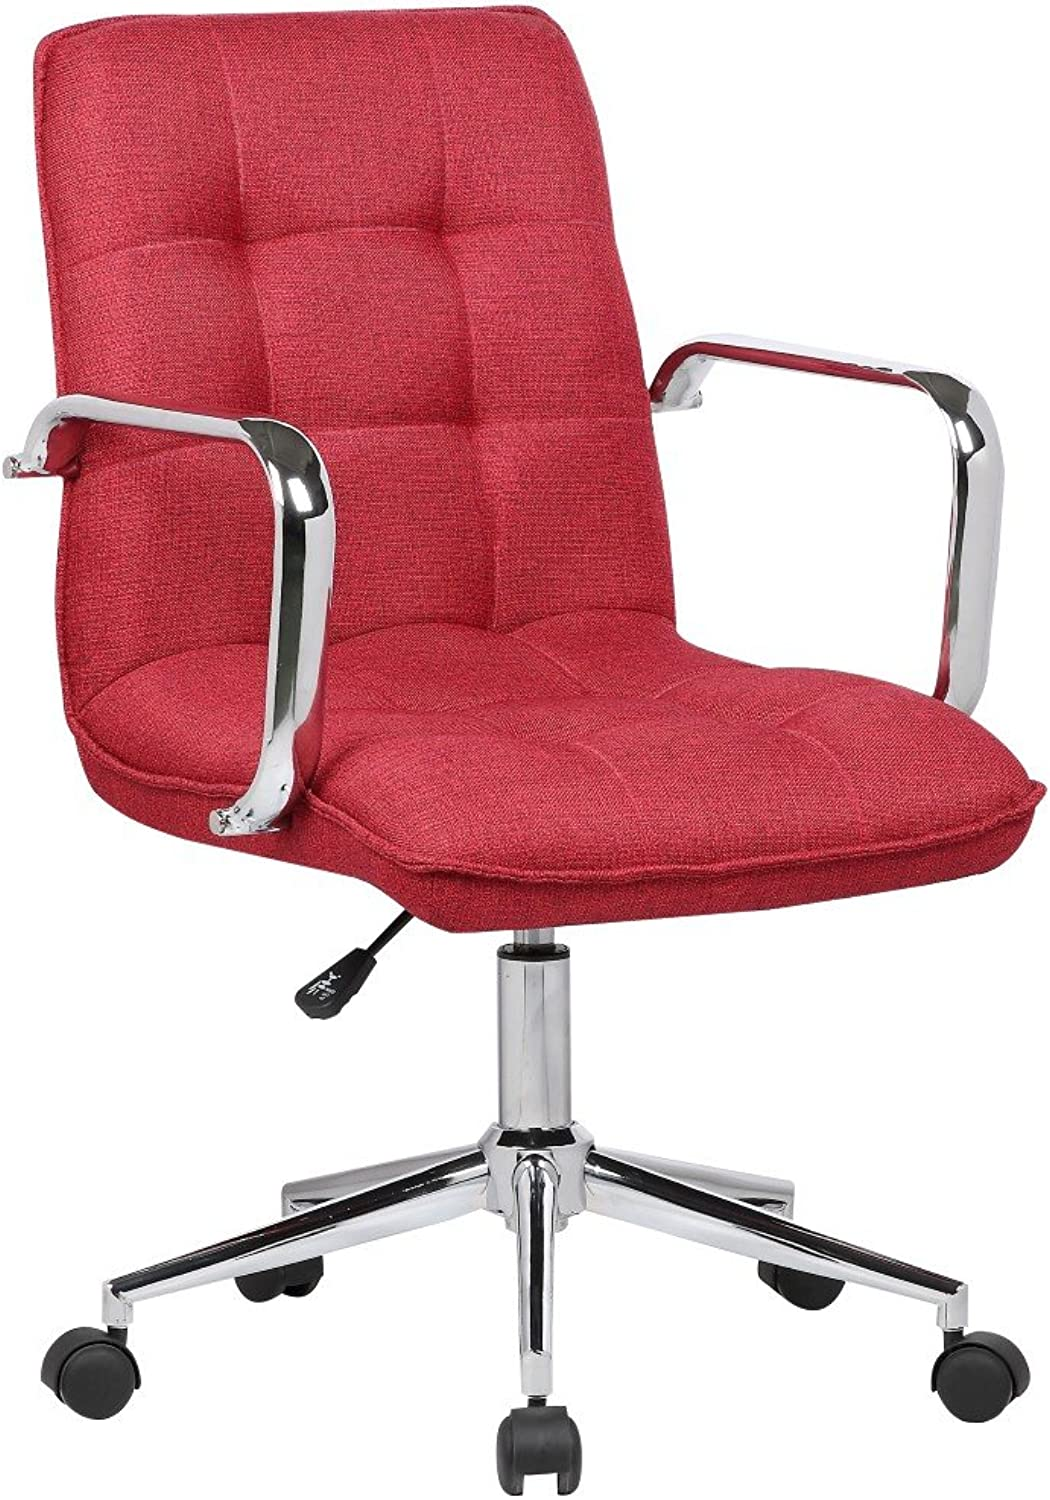 Porthos Home SKC014D RED Theresa Office Chair Red